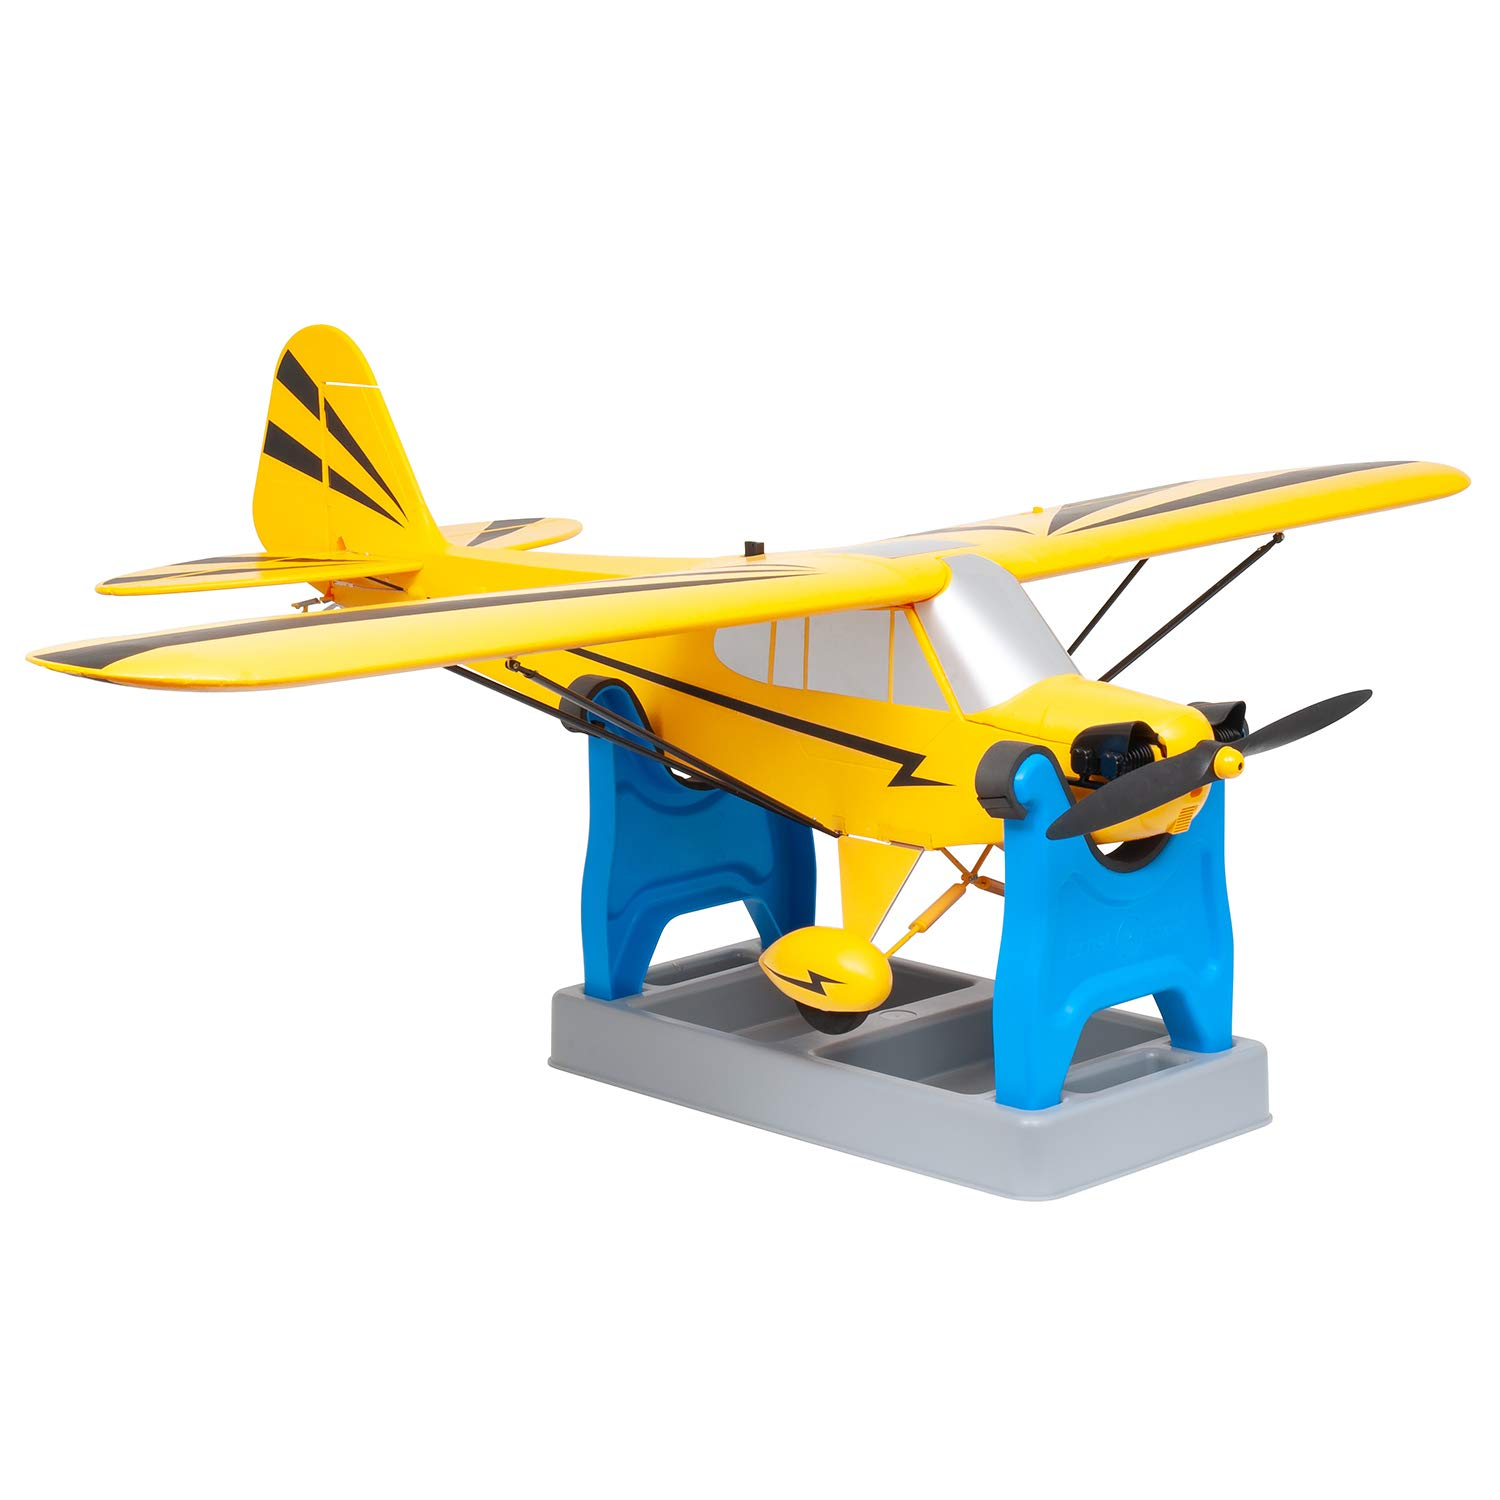 Ernst Manufacturing Ultra Stand for Model Airplanes